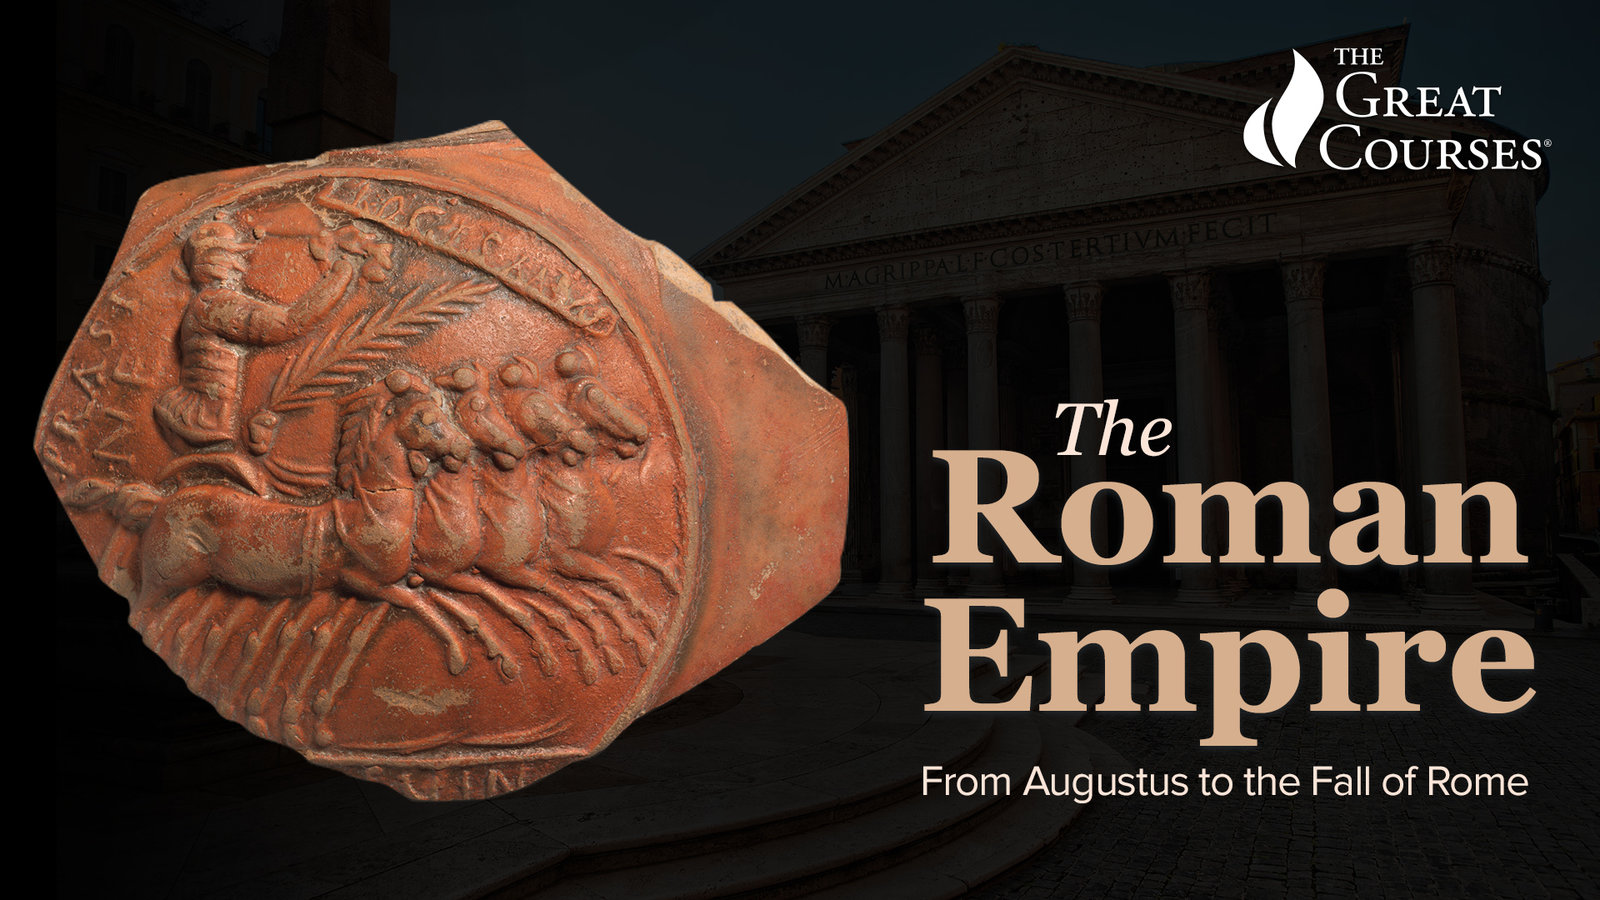 The Roman Empire - From Augustus to The Fall of Rome